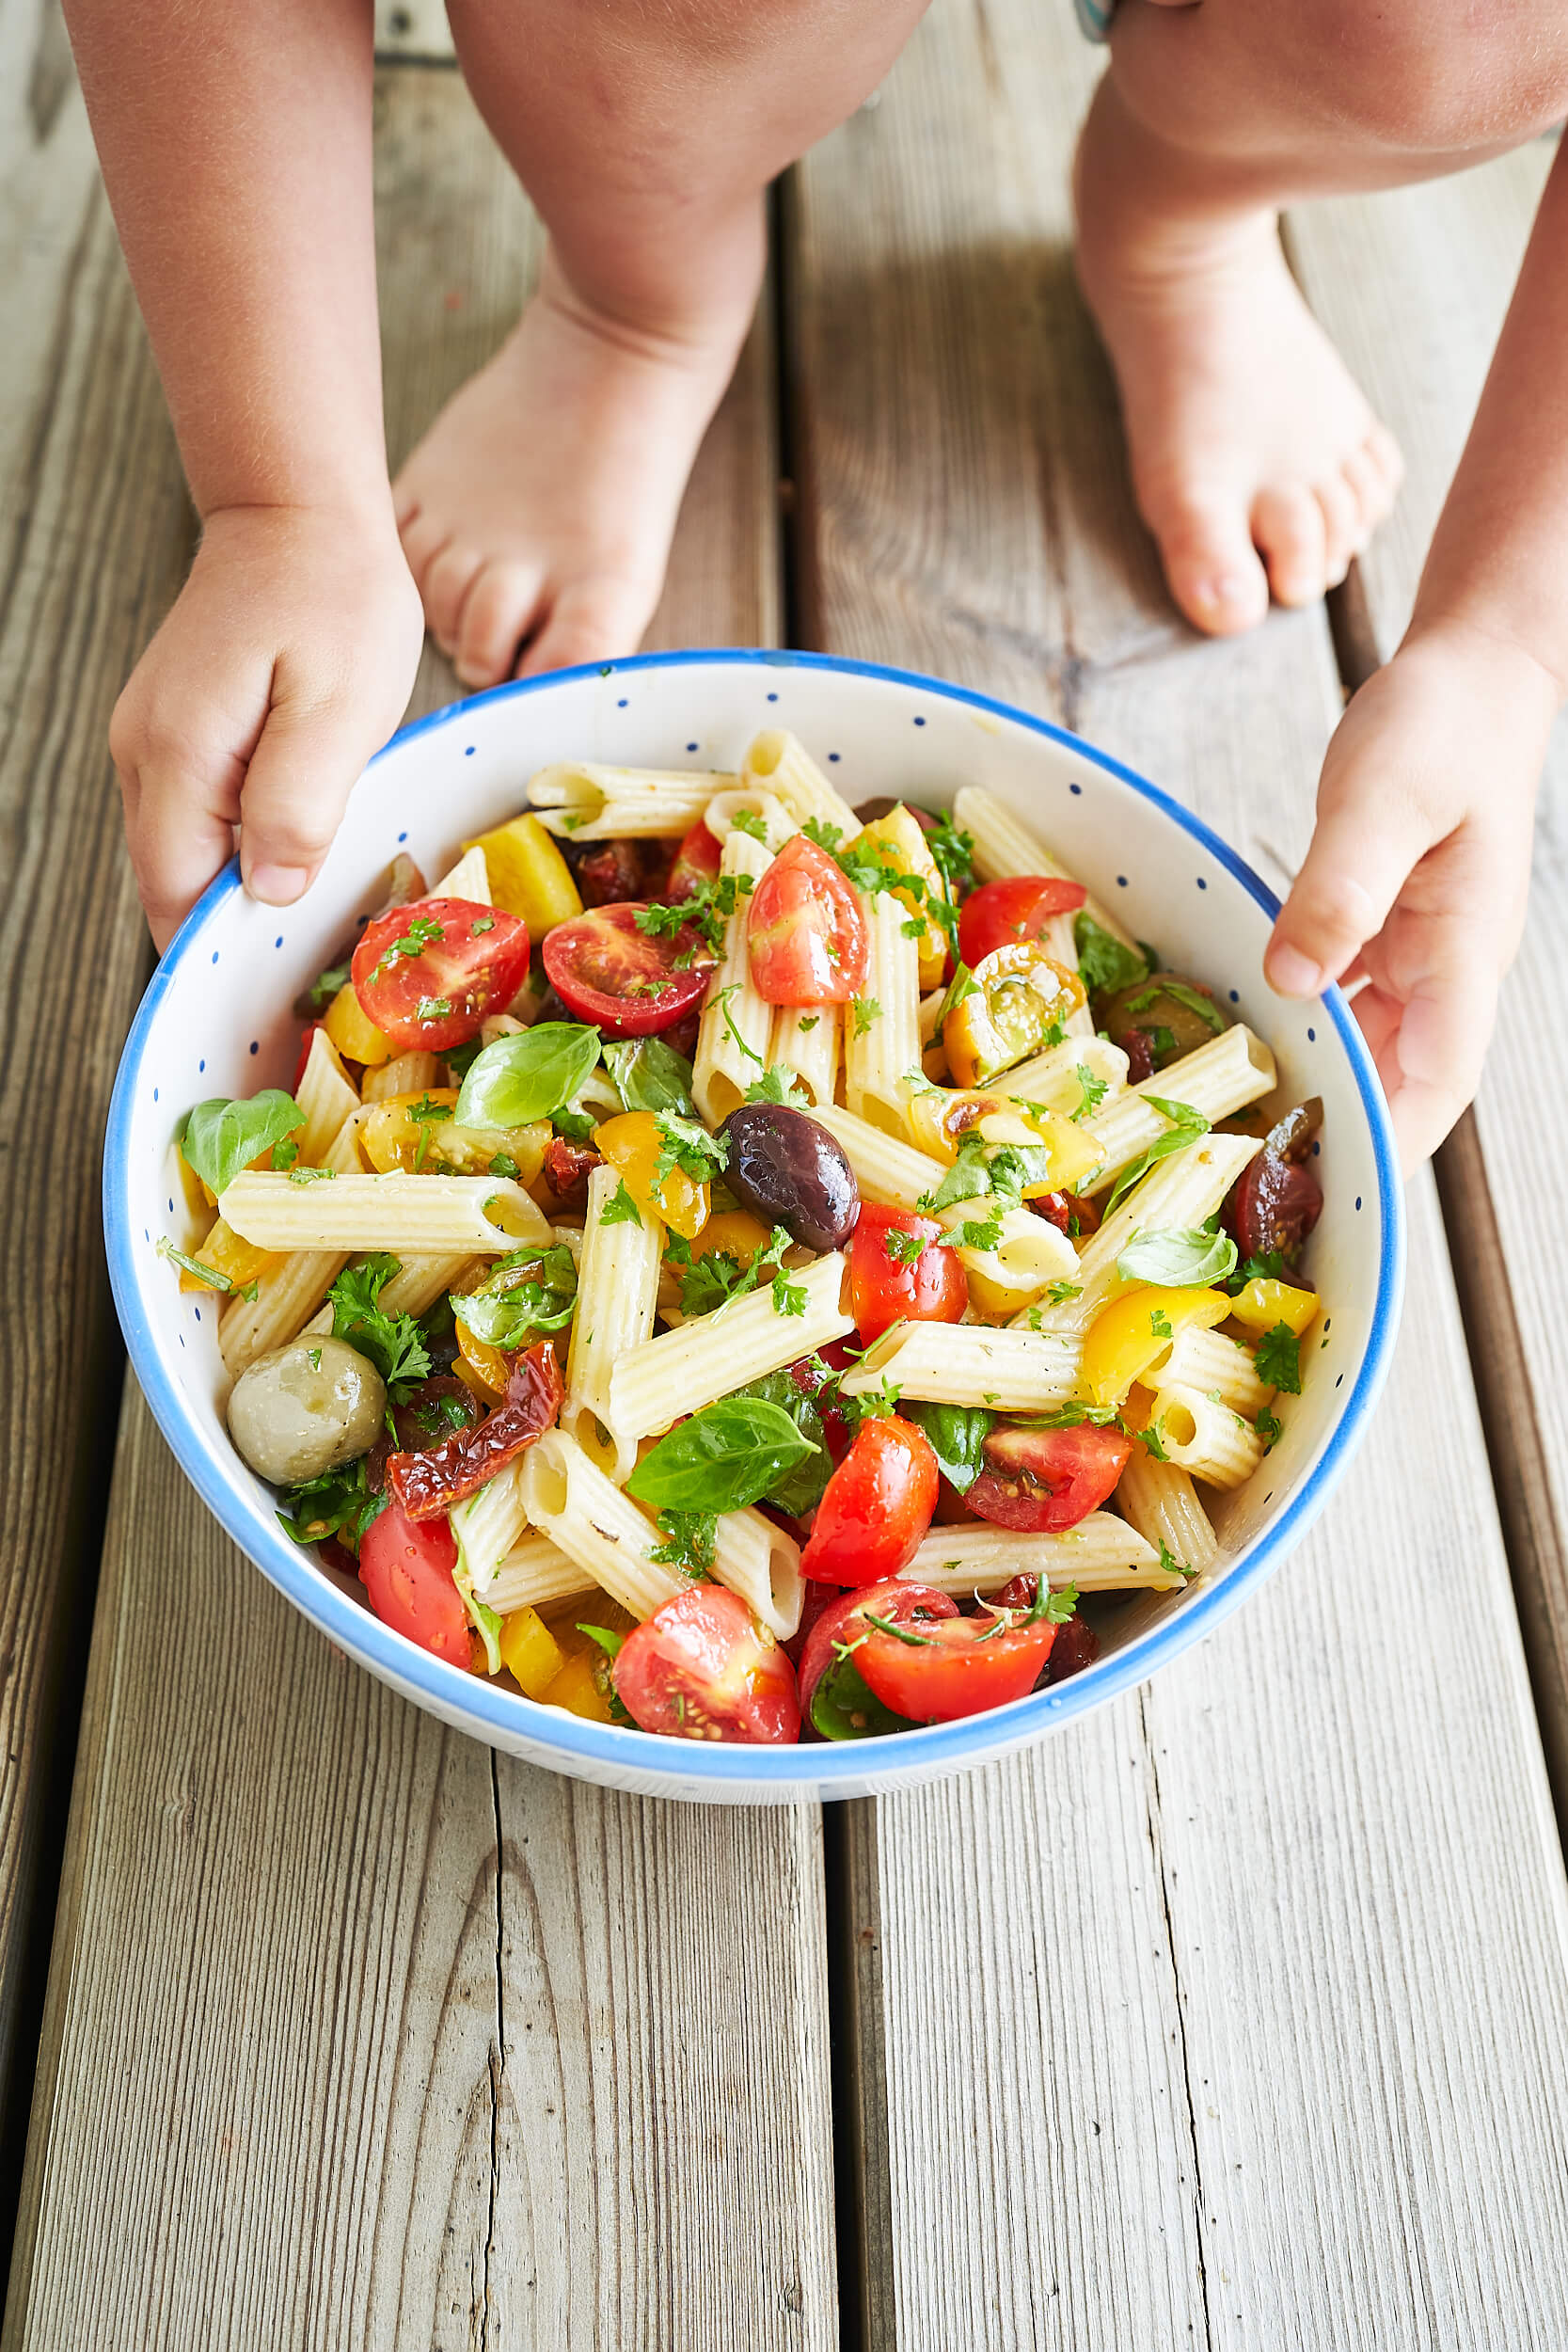 JUICY VEGGIE PASTA SALAD JOYOUS HEALTH